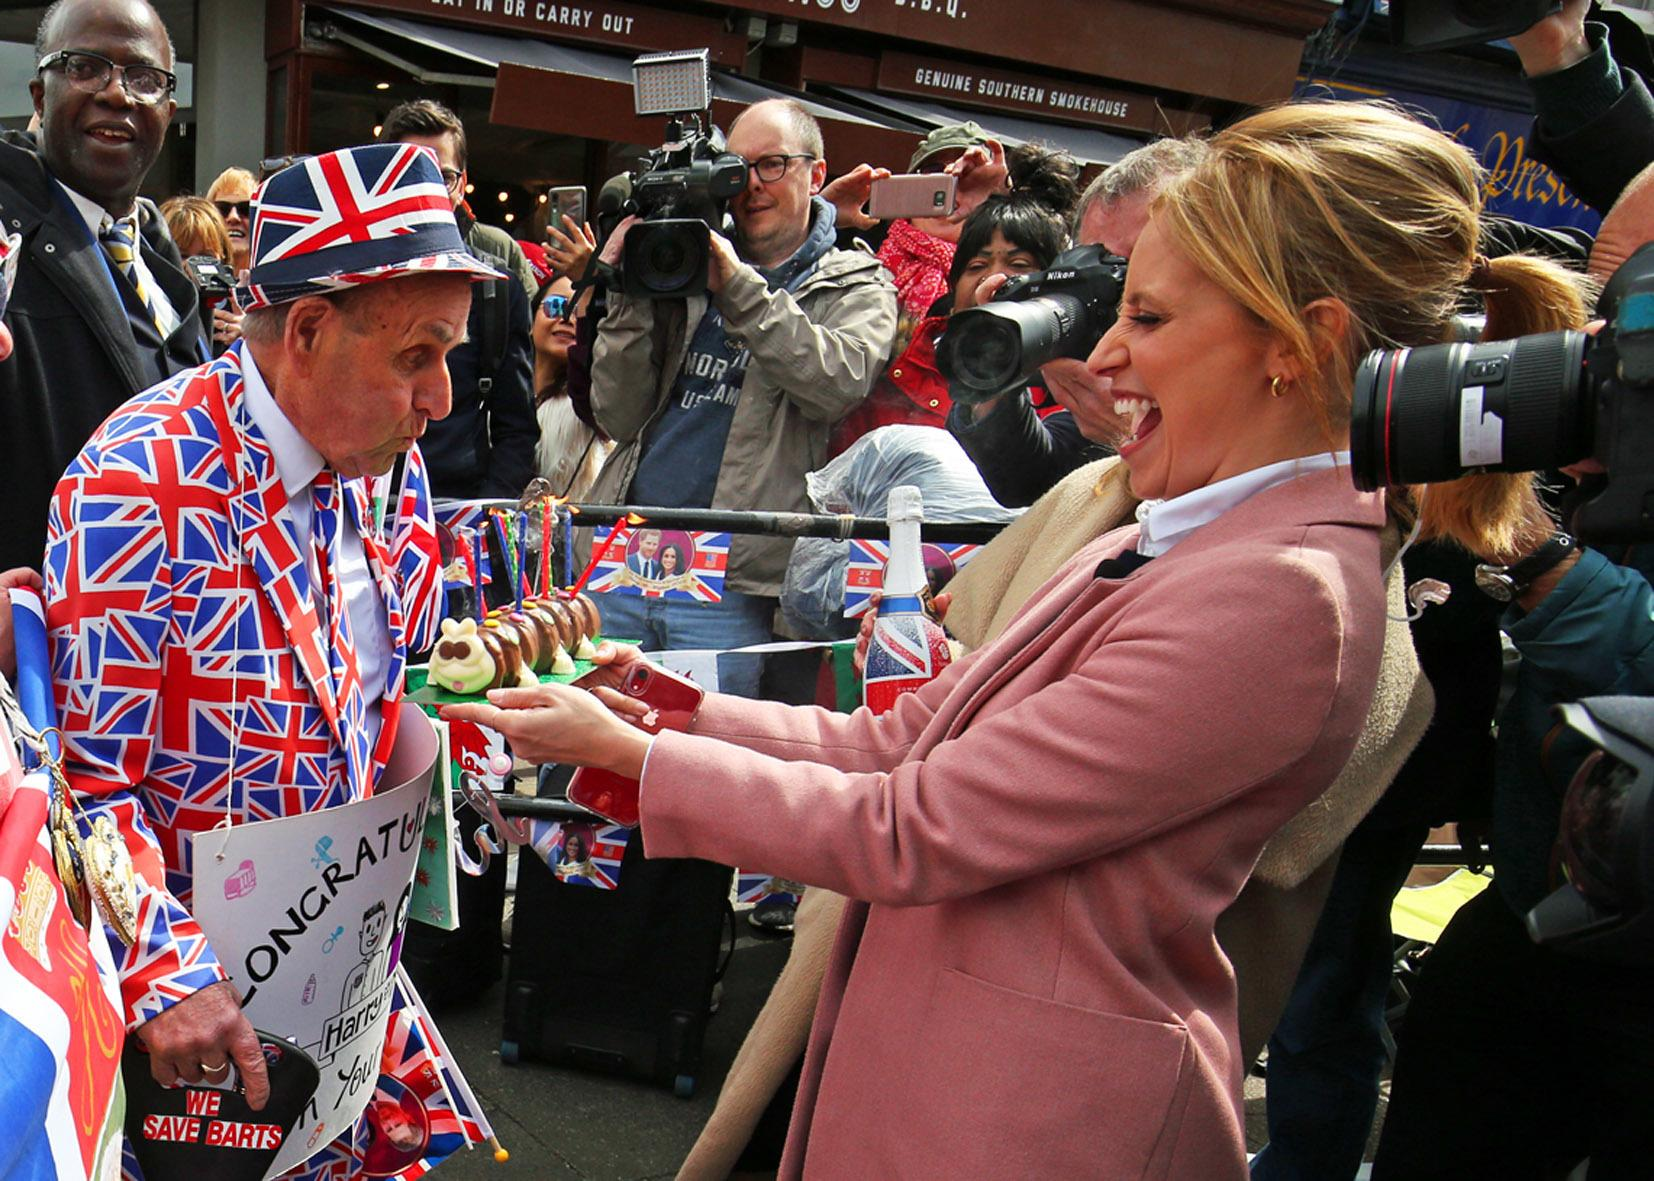 Super fan Terry Hutt, 84 (centre), is presented with a birthday cake by members of the media for a tv stunt in Windsor, Berkshire, following the announcement of the birth of a baby boy to the Duke and Duchess of Sussex.